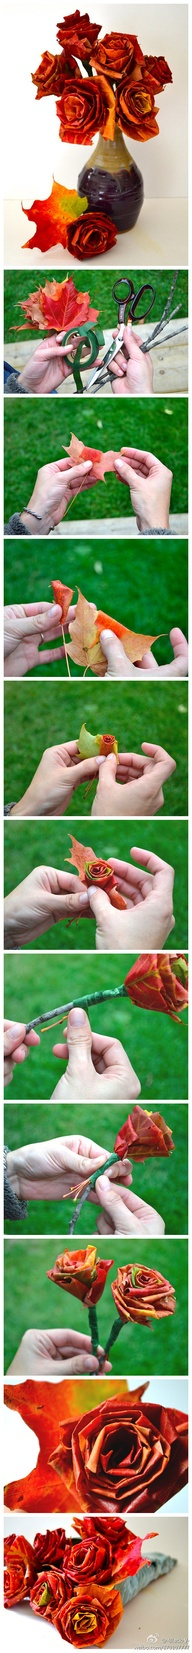 Roses from Fall Leaves - this is lovely